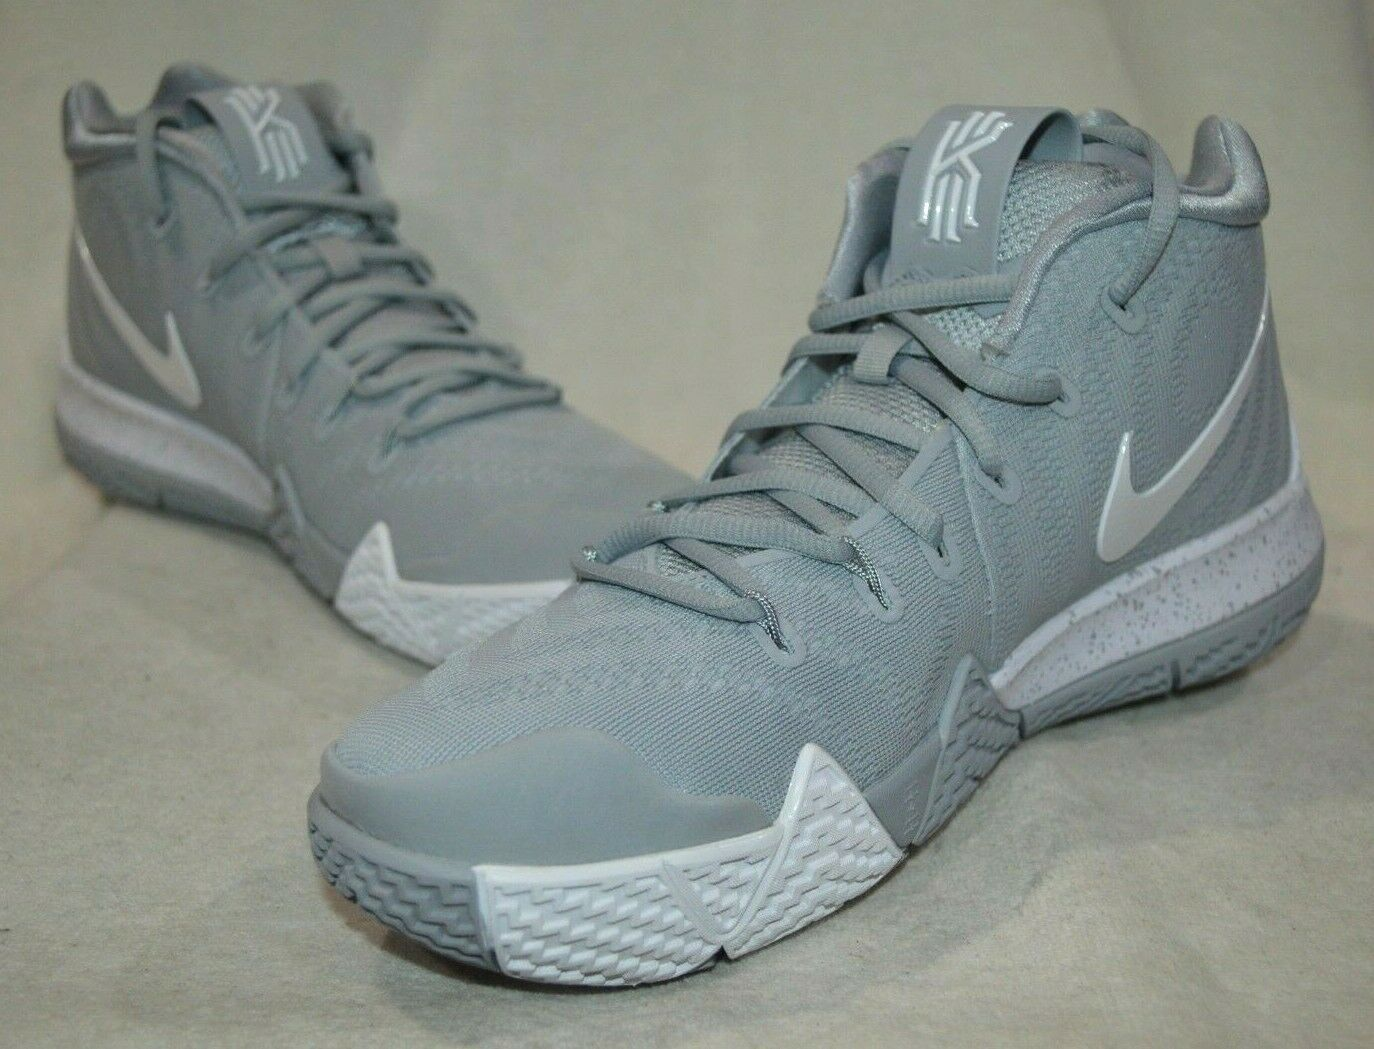 Nike Kyrie Irving 4 TB Wolf Grey/White